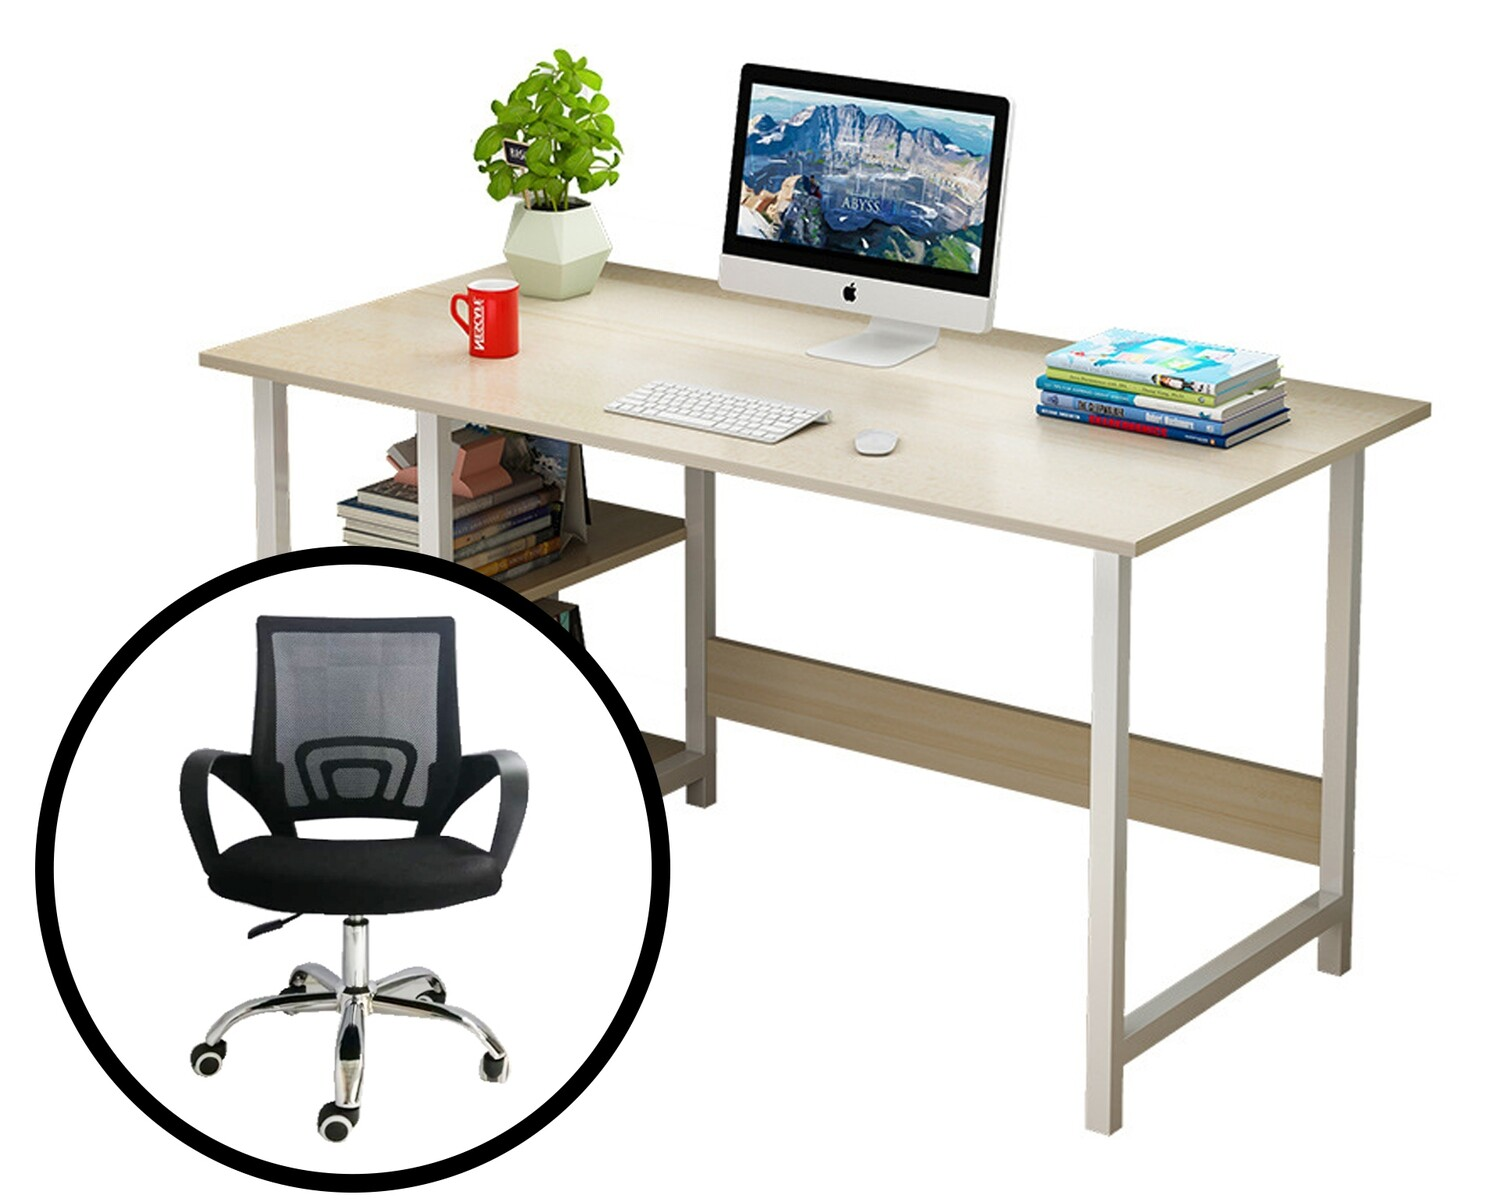 Ofix Work From Home 18 With Storage (120*60)